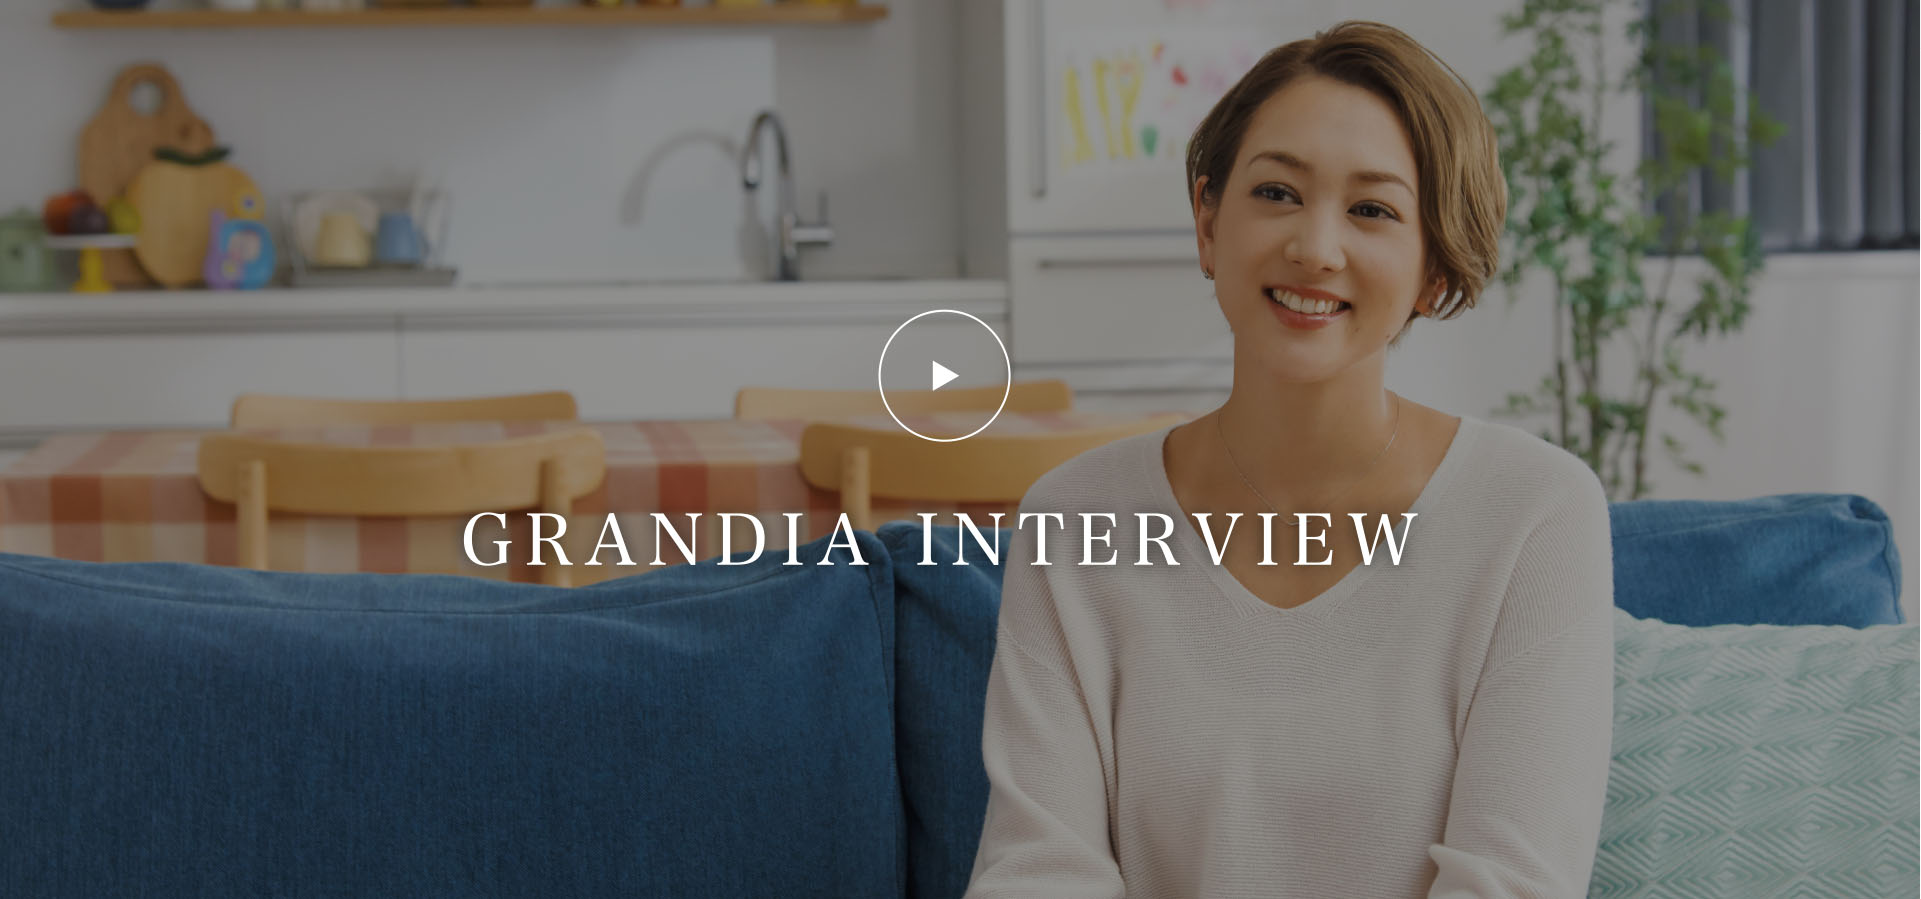 GRANDIA INTERVIEW